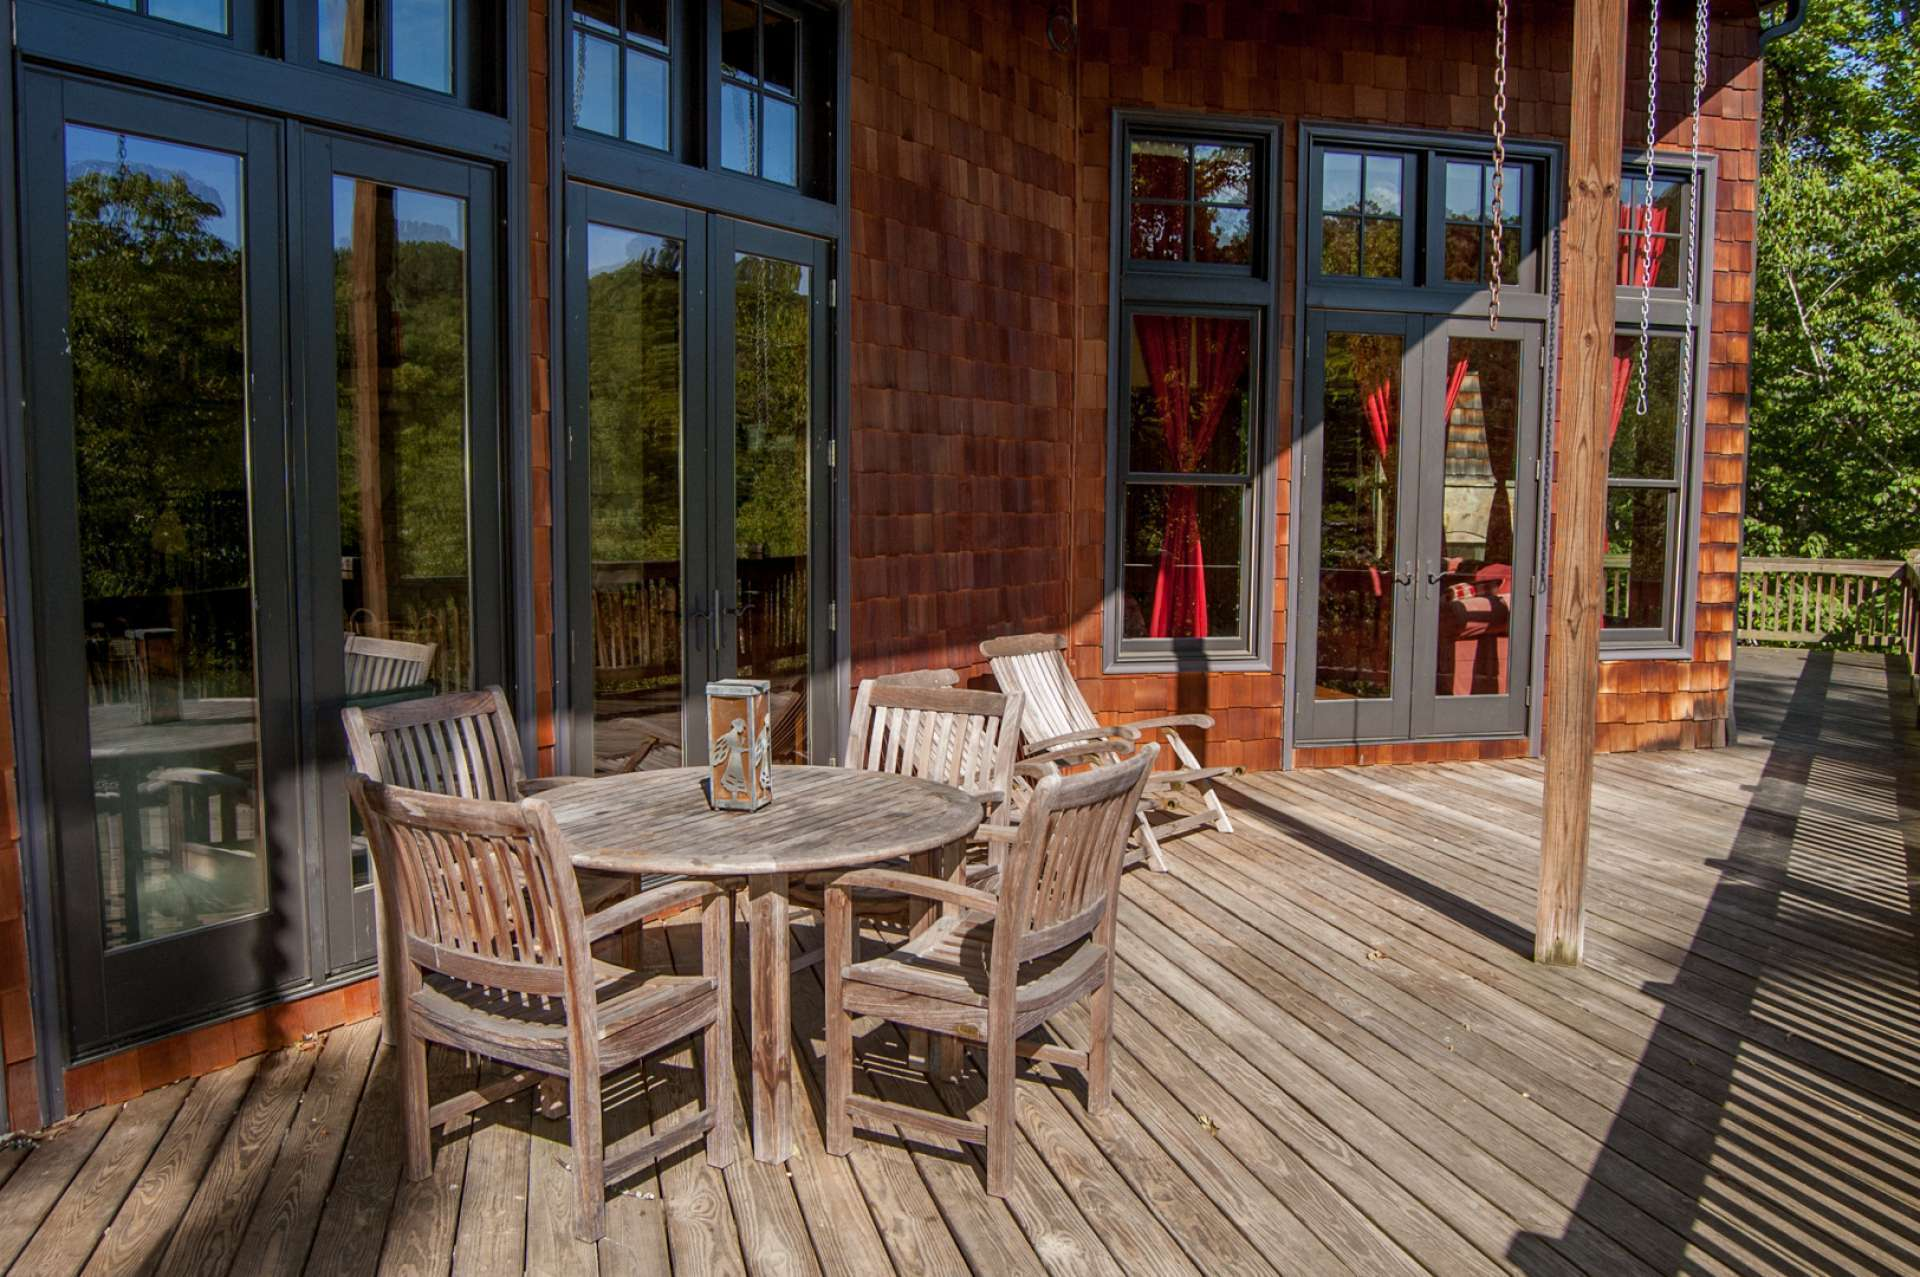 The main level offers both covered and open decking to enjoy outdoor entertaining or simply relaxing by the outdoor fireplace with the setting and the river below.